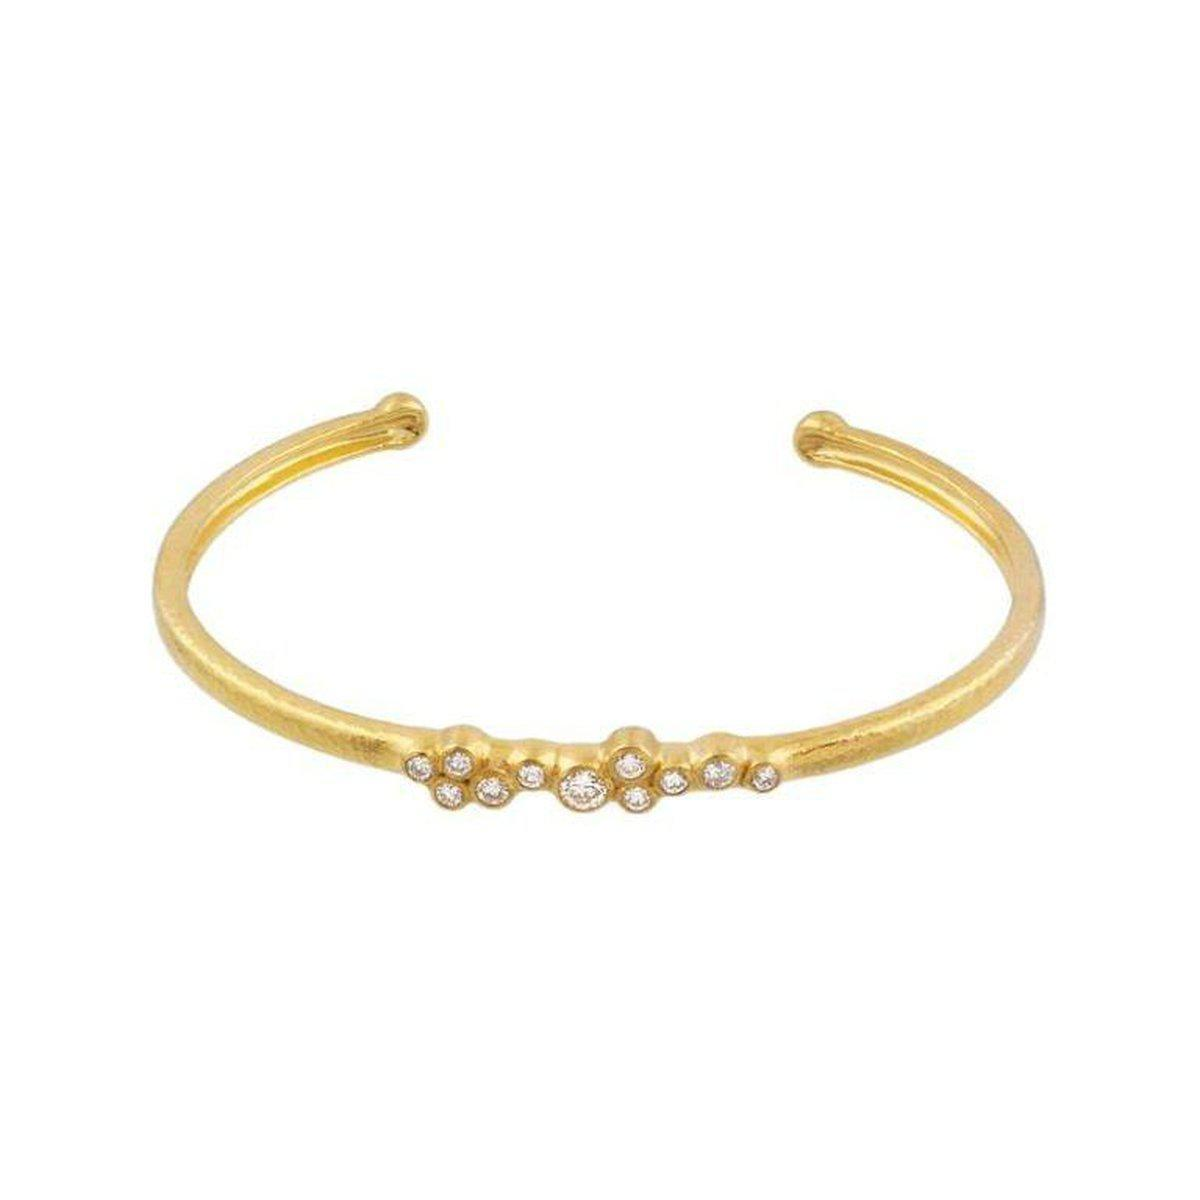 Gurhan 22K Yellow Gold .48cts  Diamond Gold Bangle with Stones CB-SCTDI-11DI-NV